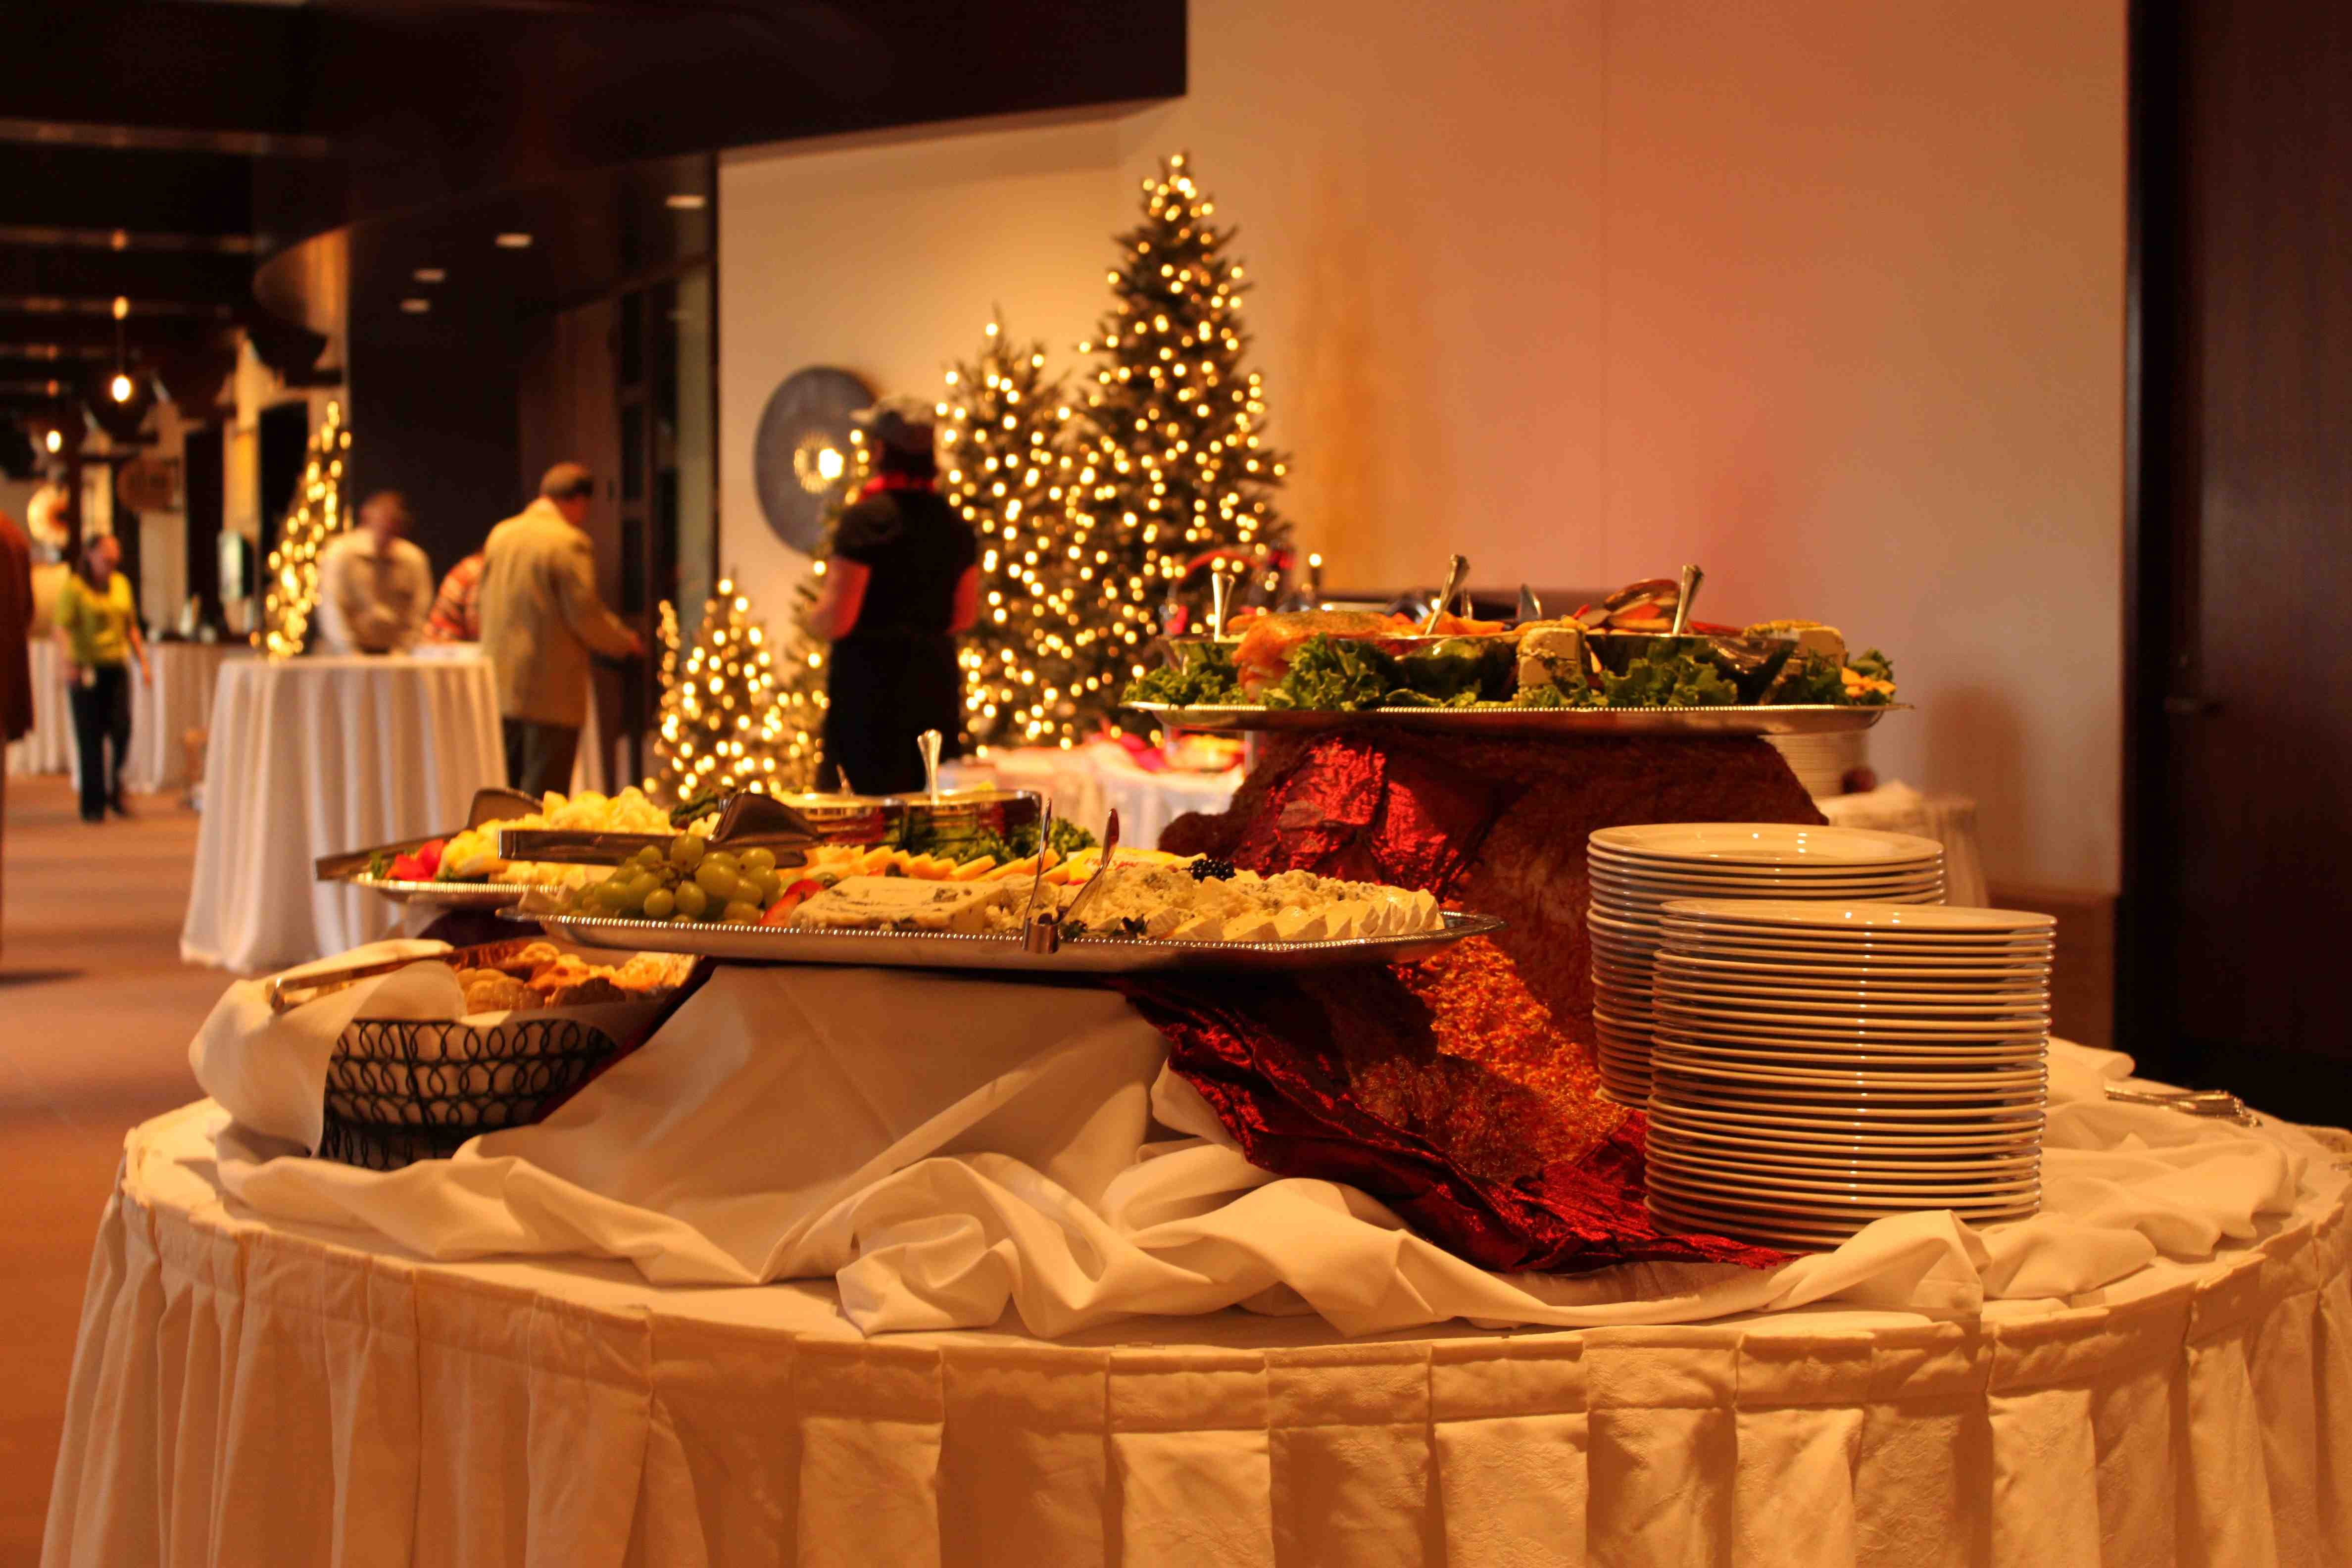 A Holiday party food station setup by Kahn's Catering, the